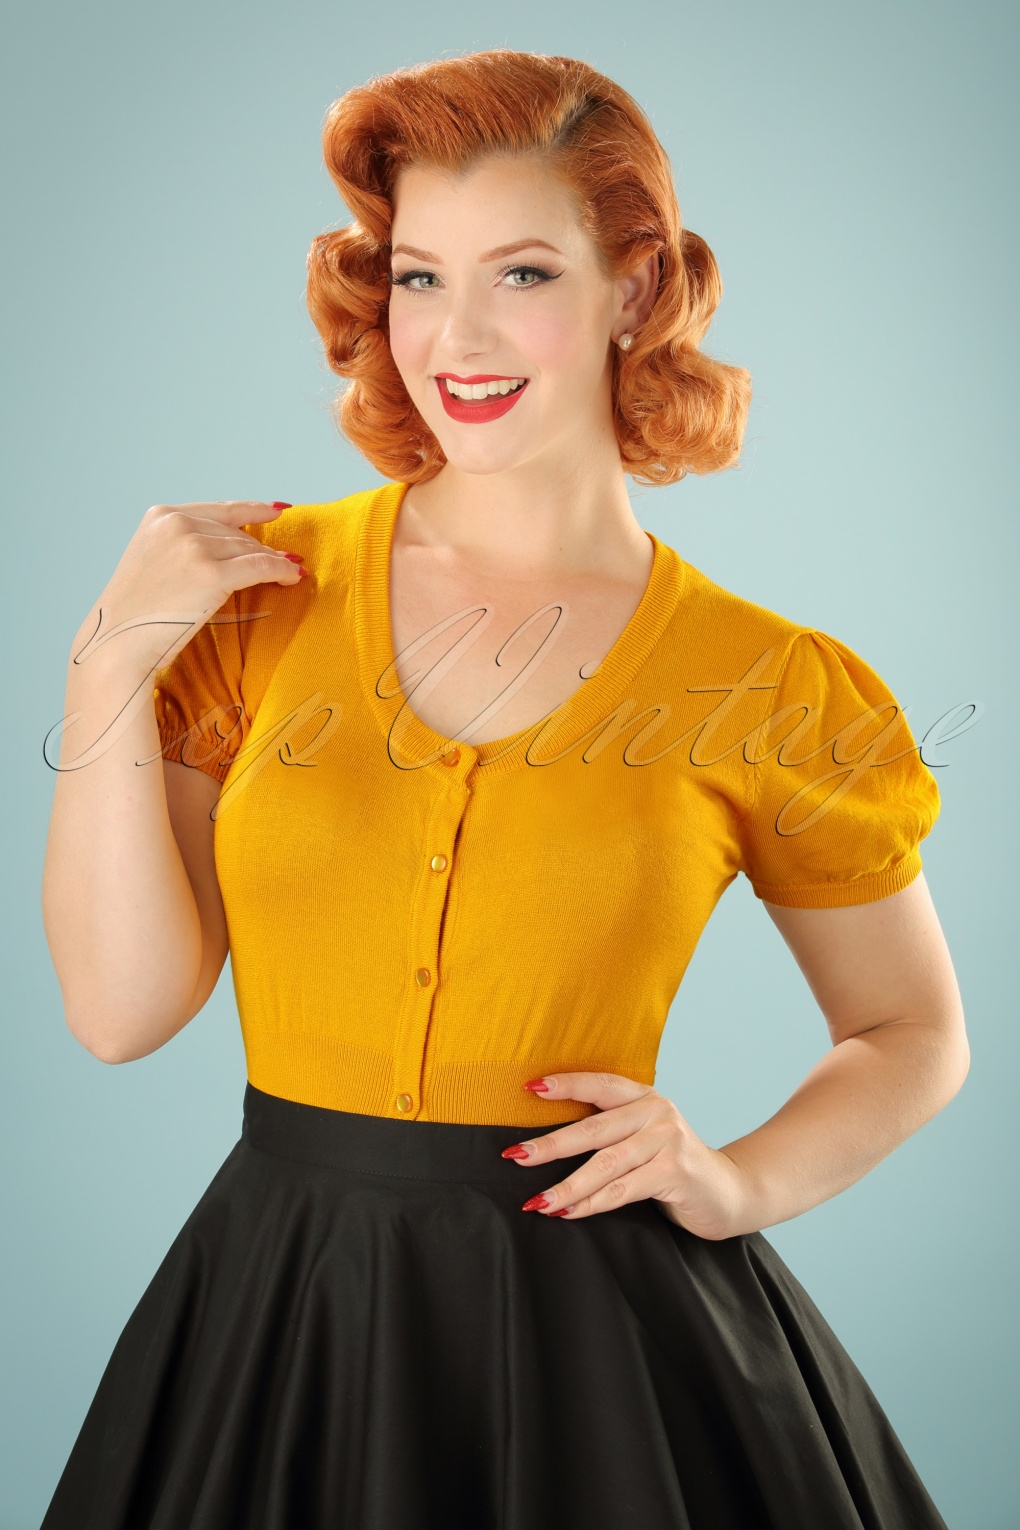 Vintage & Retro Shirts, Halter Tops, Blouses 40s Grace Cardigan in Yellow £15.79 AT vintagedancer.com